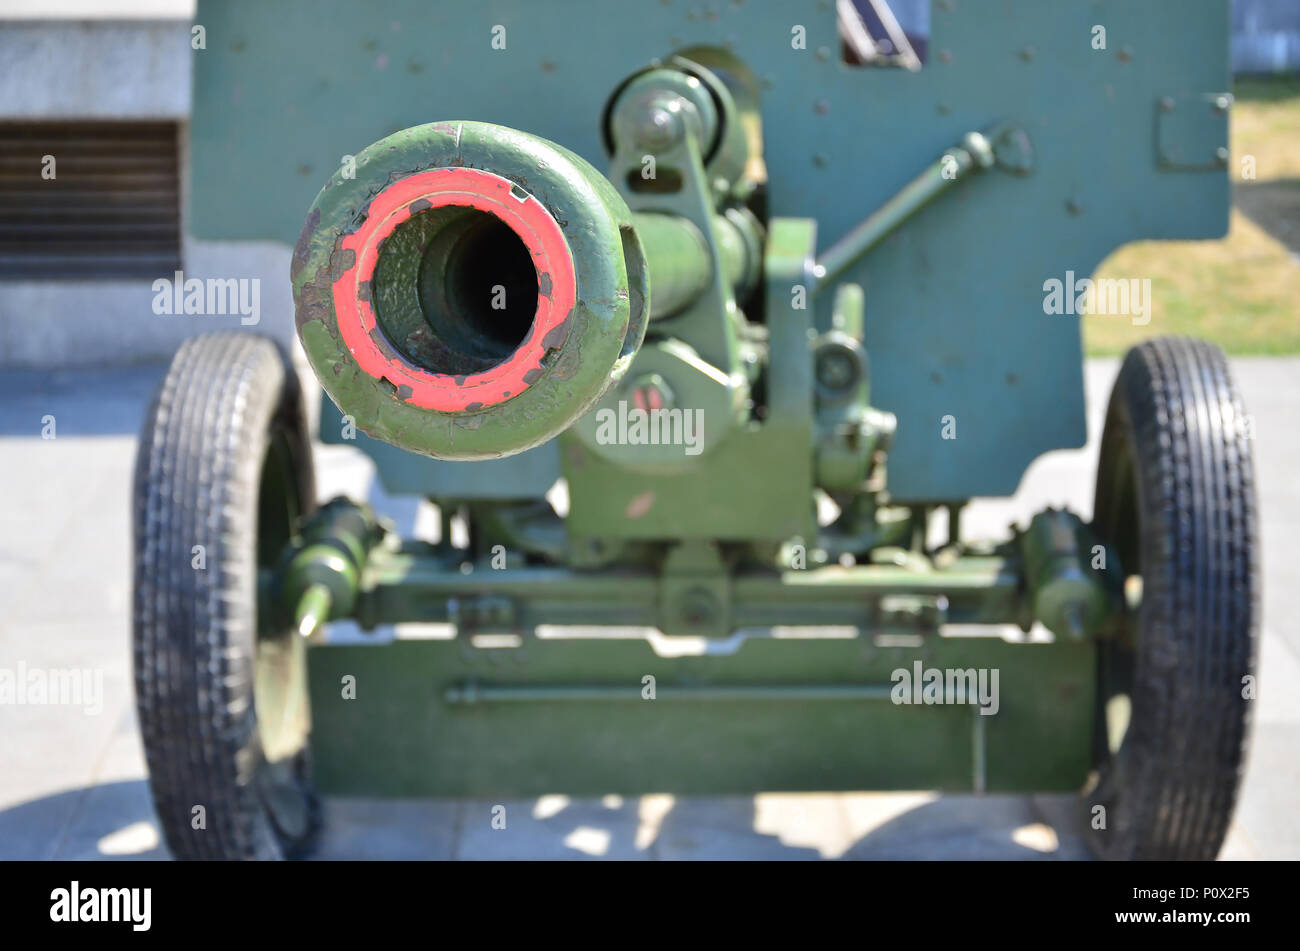 Photo of a portable weapon of the Soviet Union of the Second World War, painted in dark green color - Stock Image